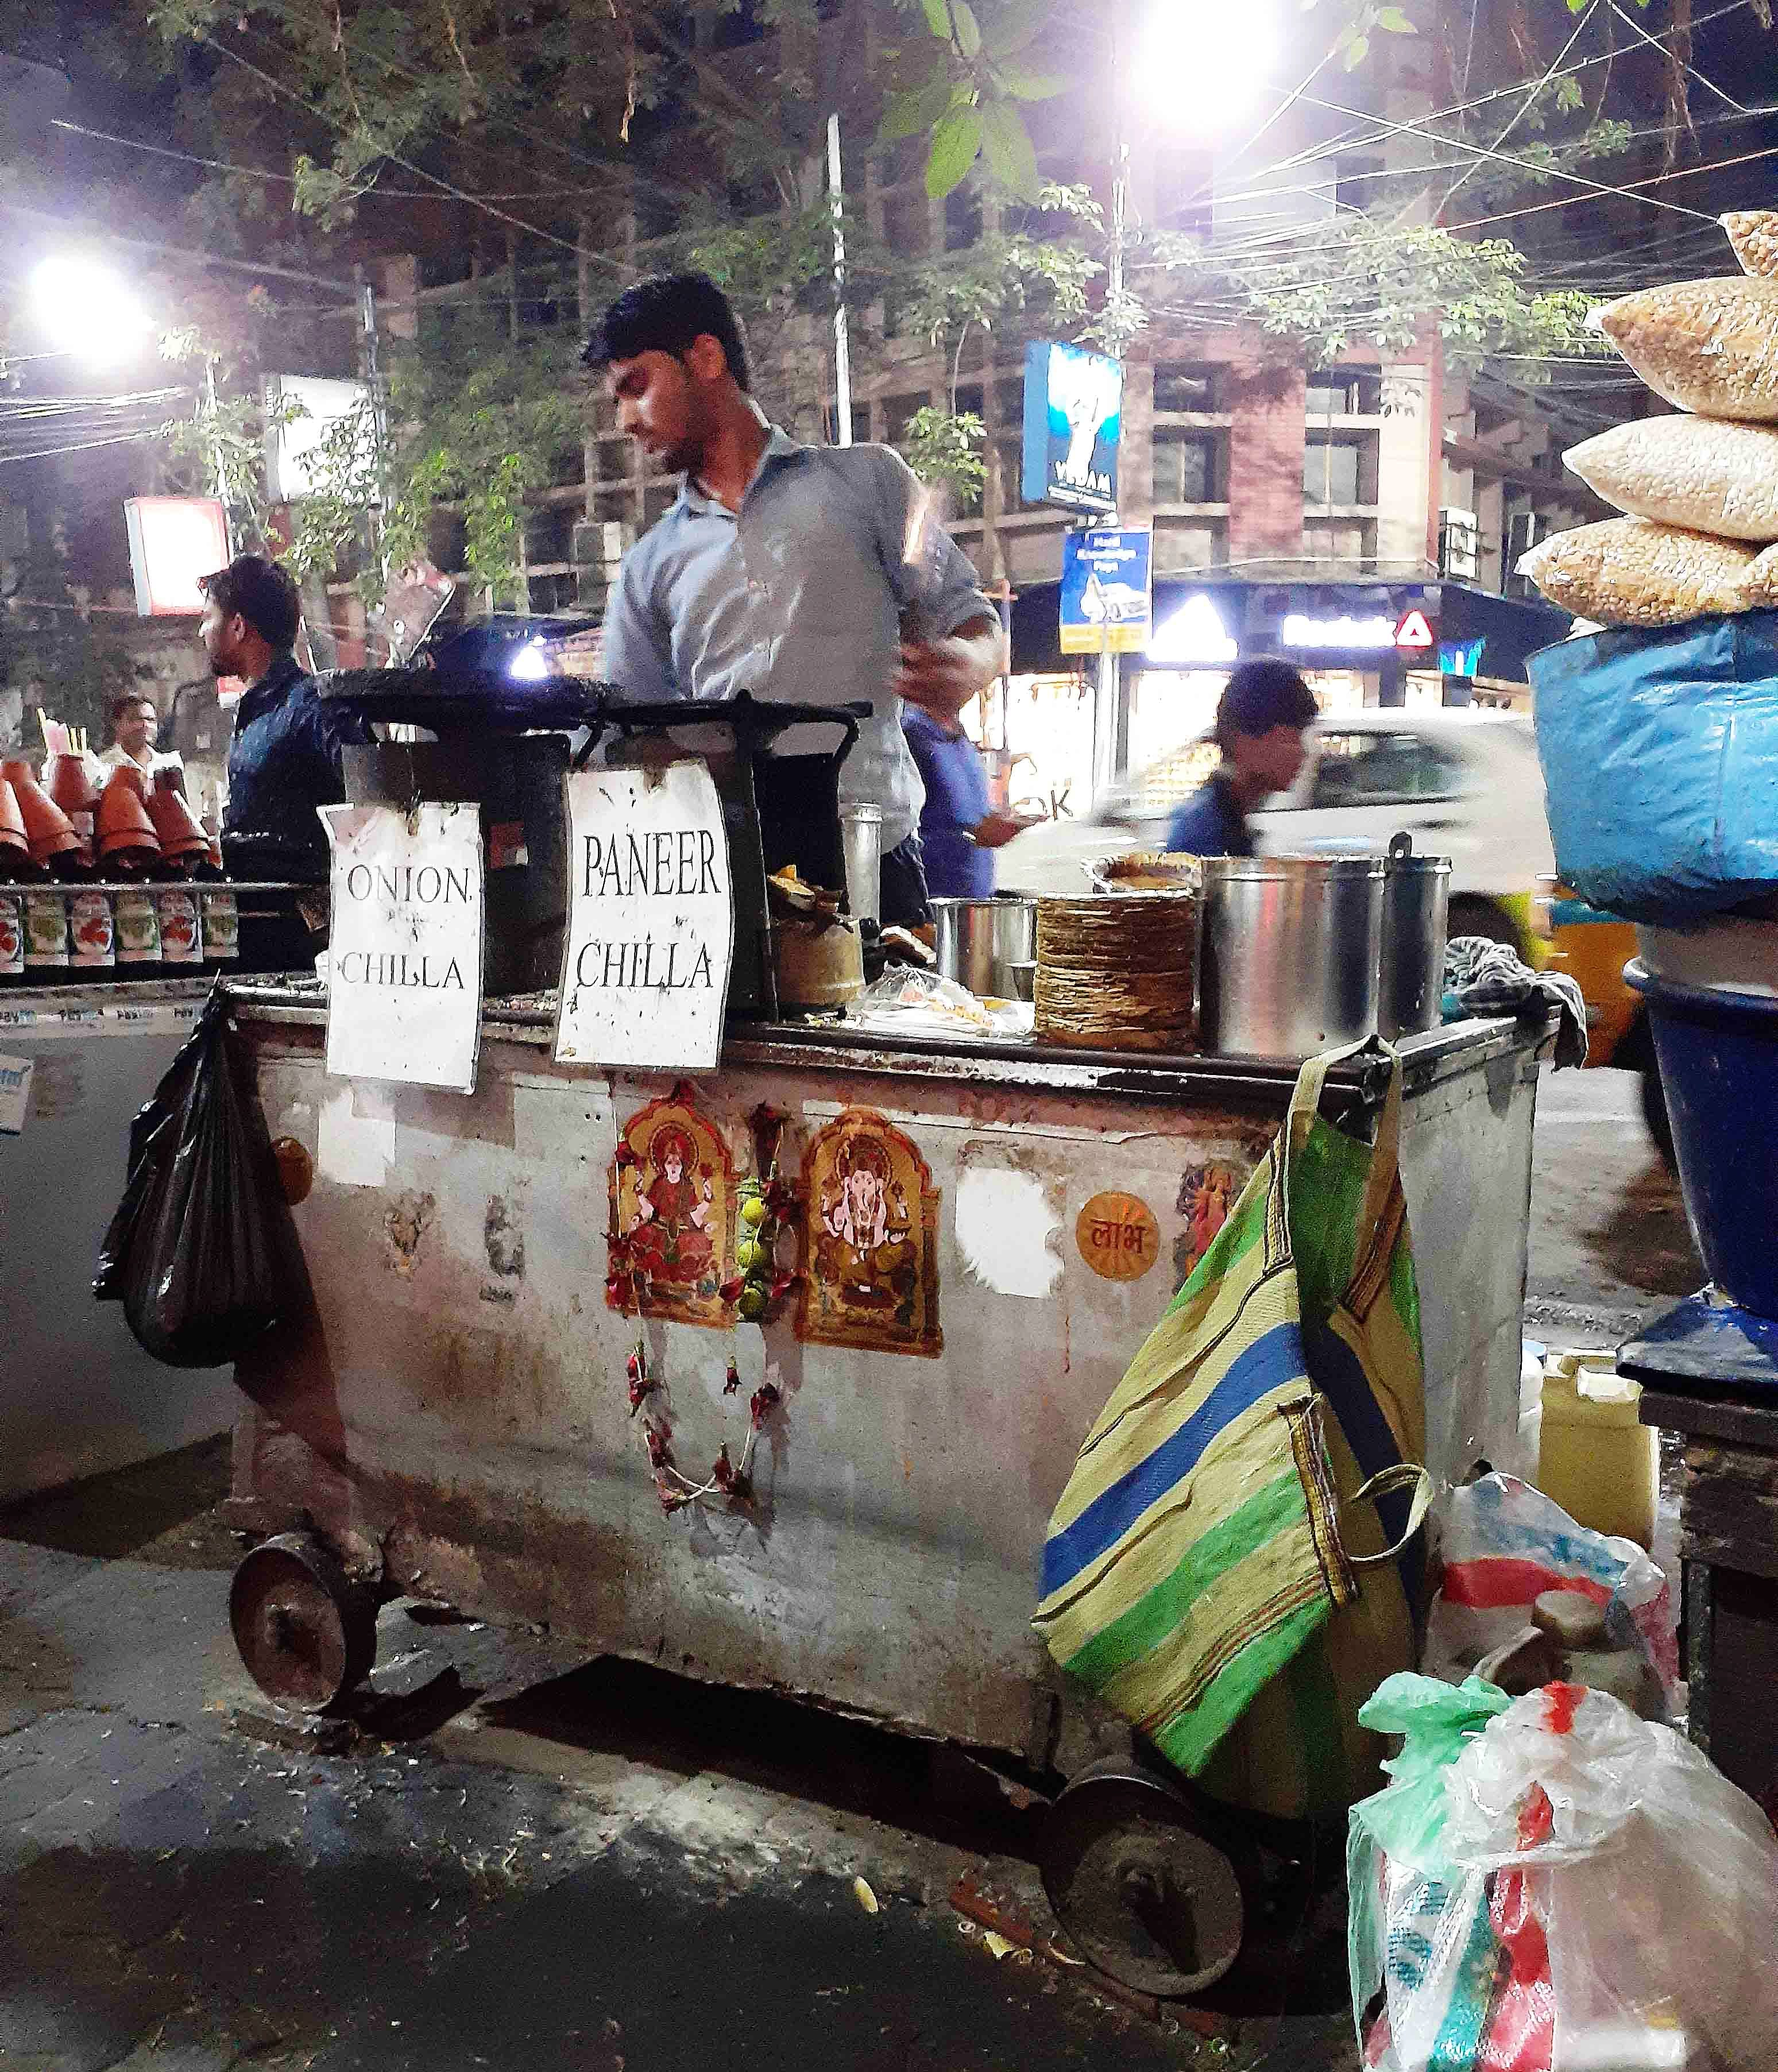 Public space,Hawker,Selling,Street,Street food,Market,City